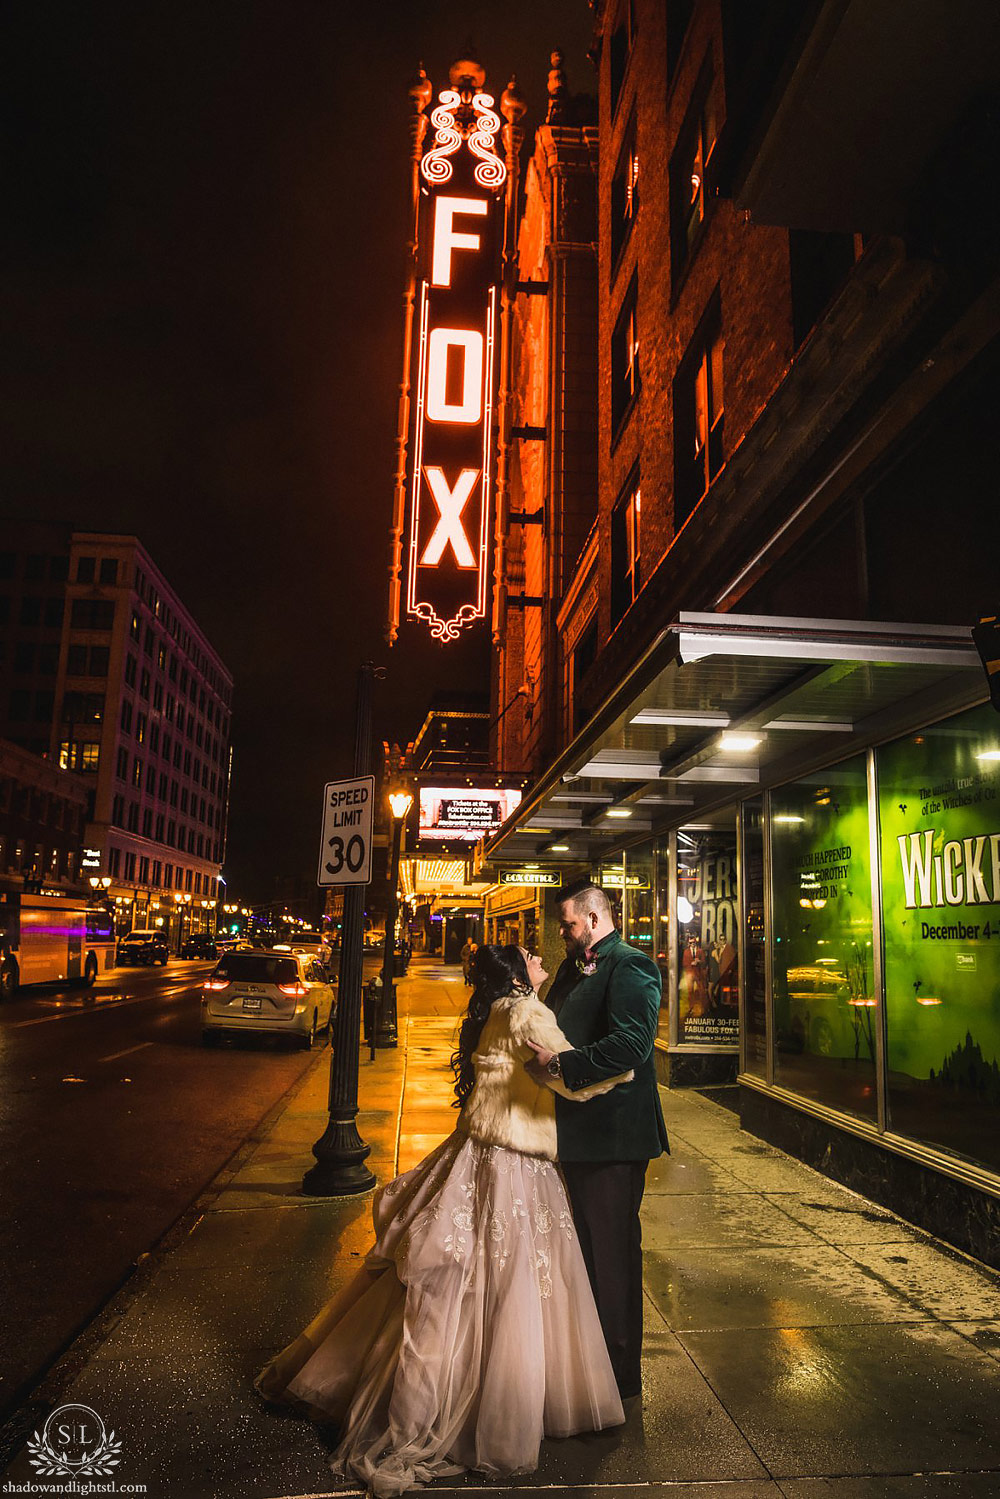 Incredible Fox Theater St. Louis wedding photo with bride and groom outside of the Fox